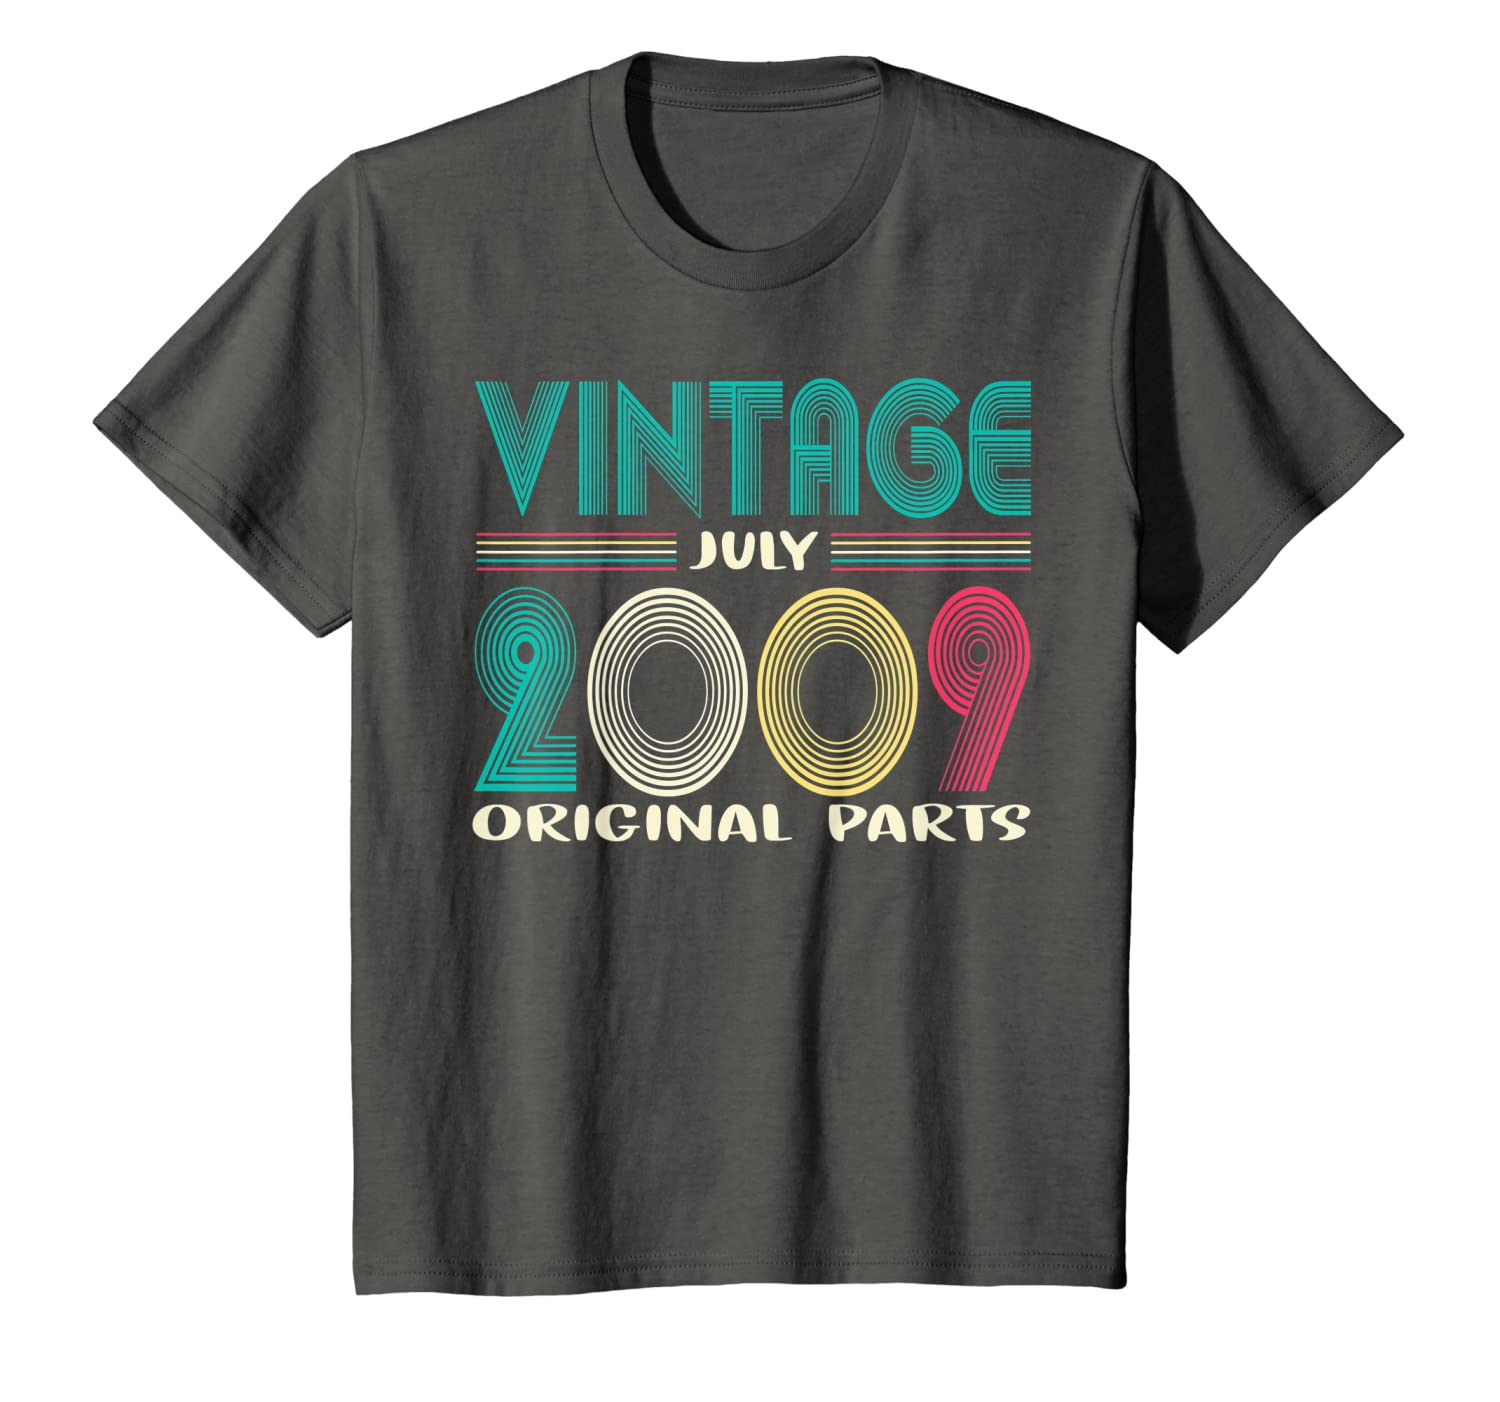 Kids Vintage July 2009 Shirt 10th Gifts Birthday T-Shirt Unisex Tshirt